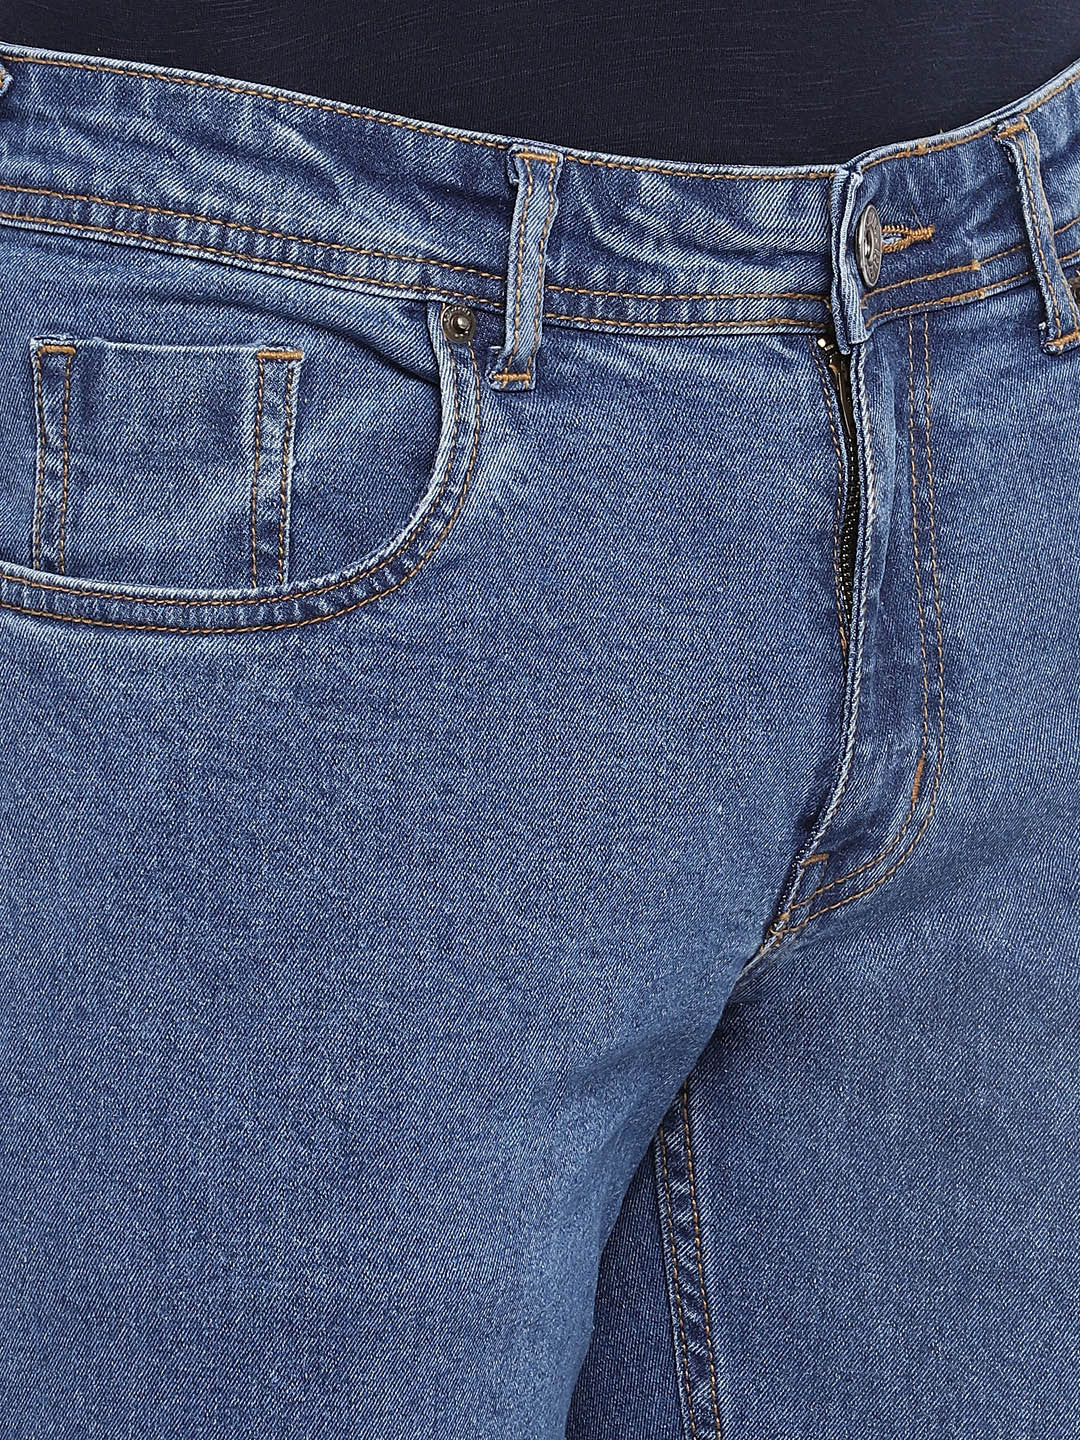 Blue Slim Fit Mid-Rise Clean Look Jeans-5